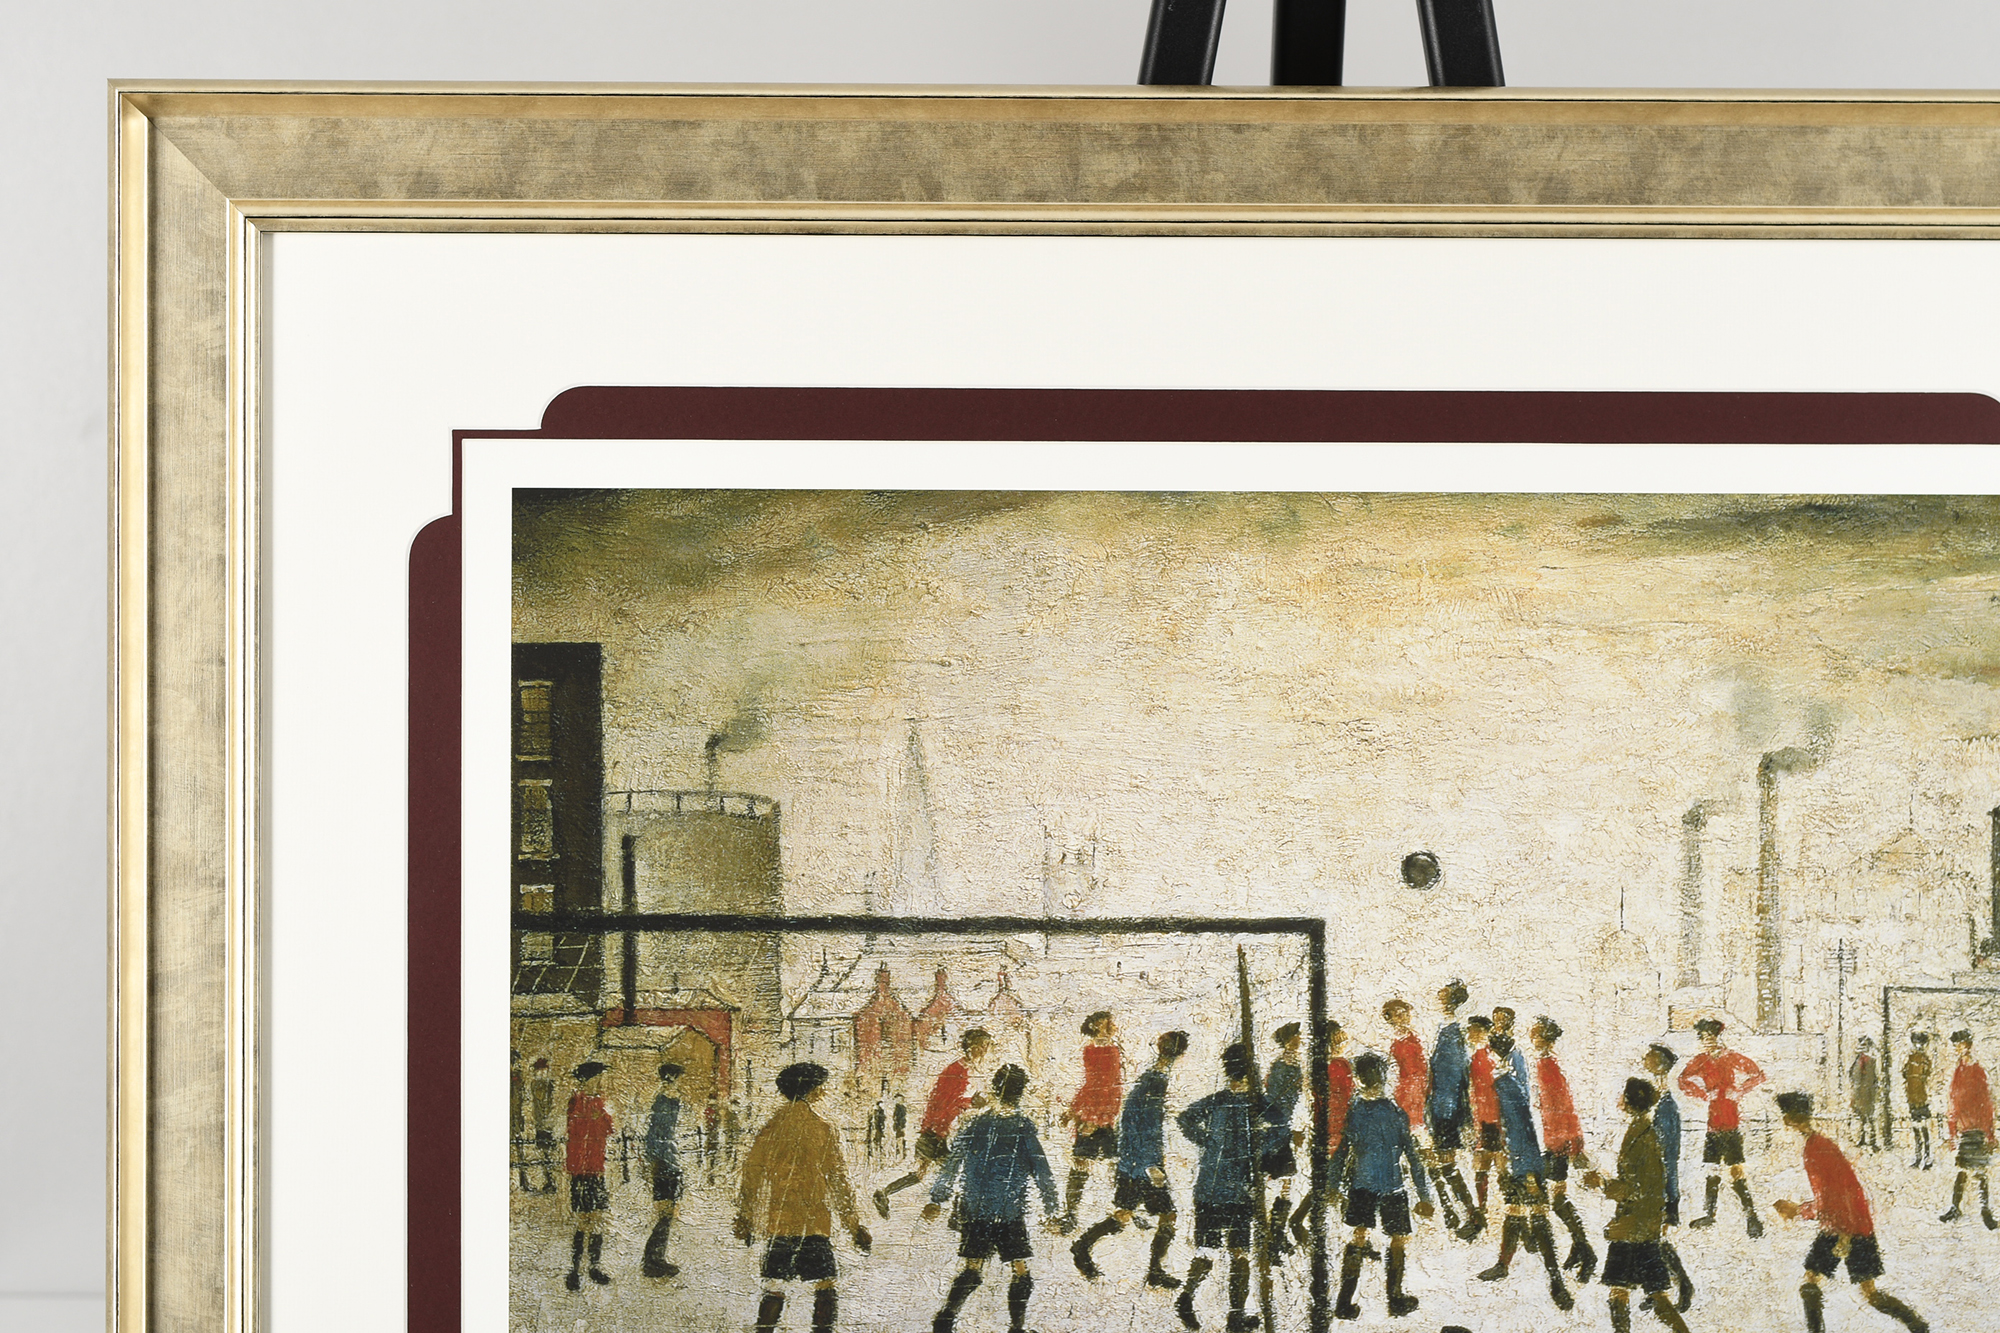 """Limited Edition by L.S. Lowry """"The Football Match"""" - Image 4 of 8"""